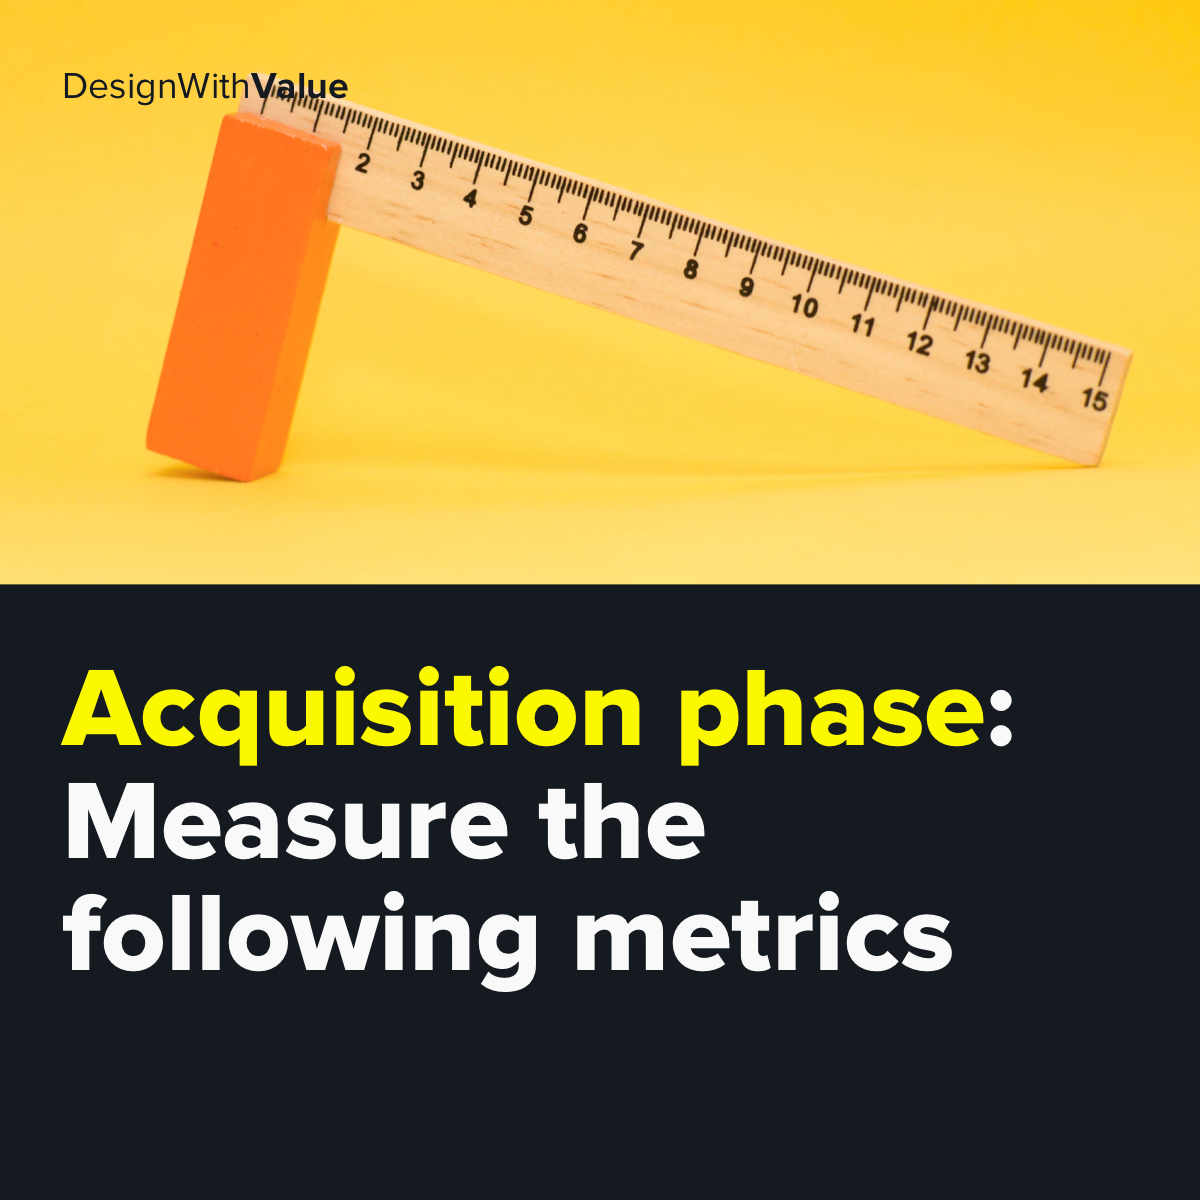 Measure the following metrics in the acquisition phase